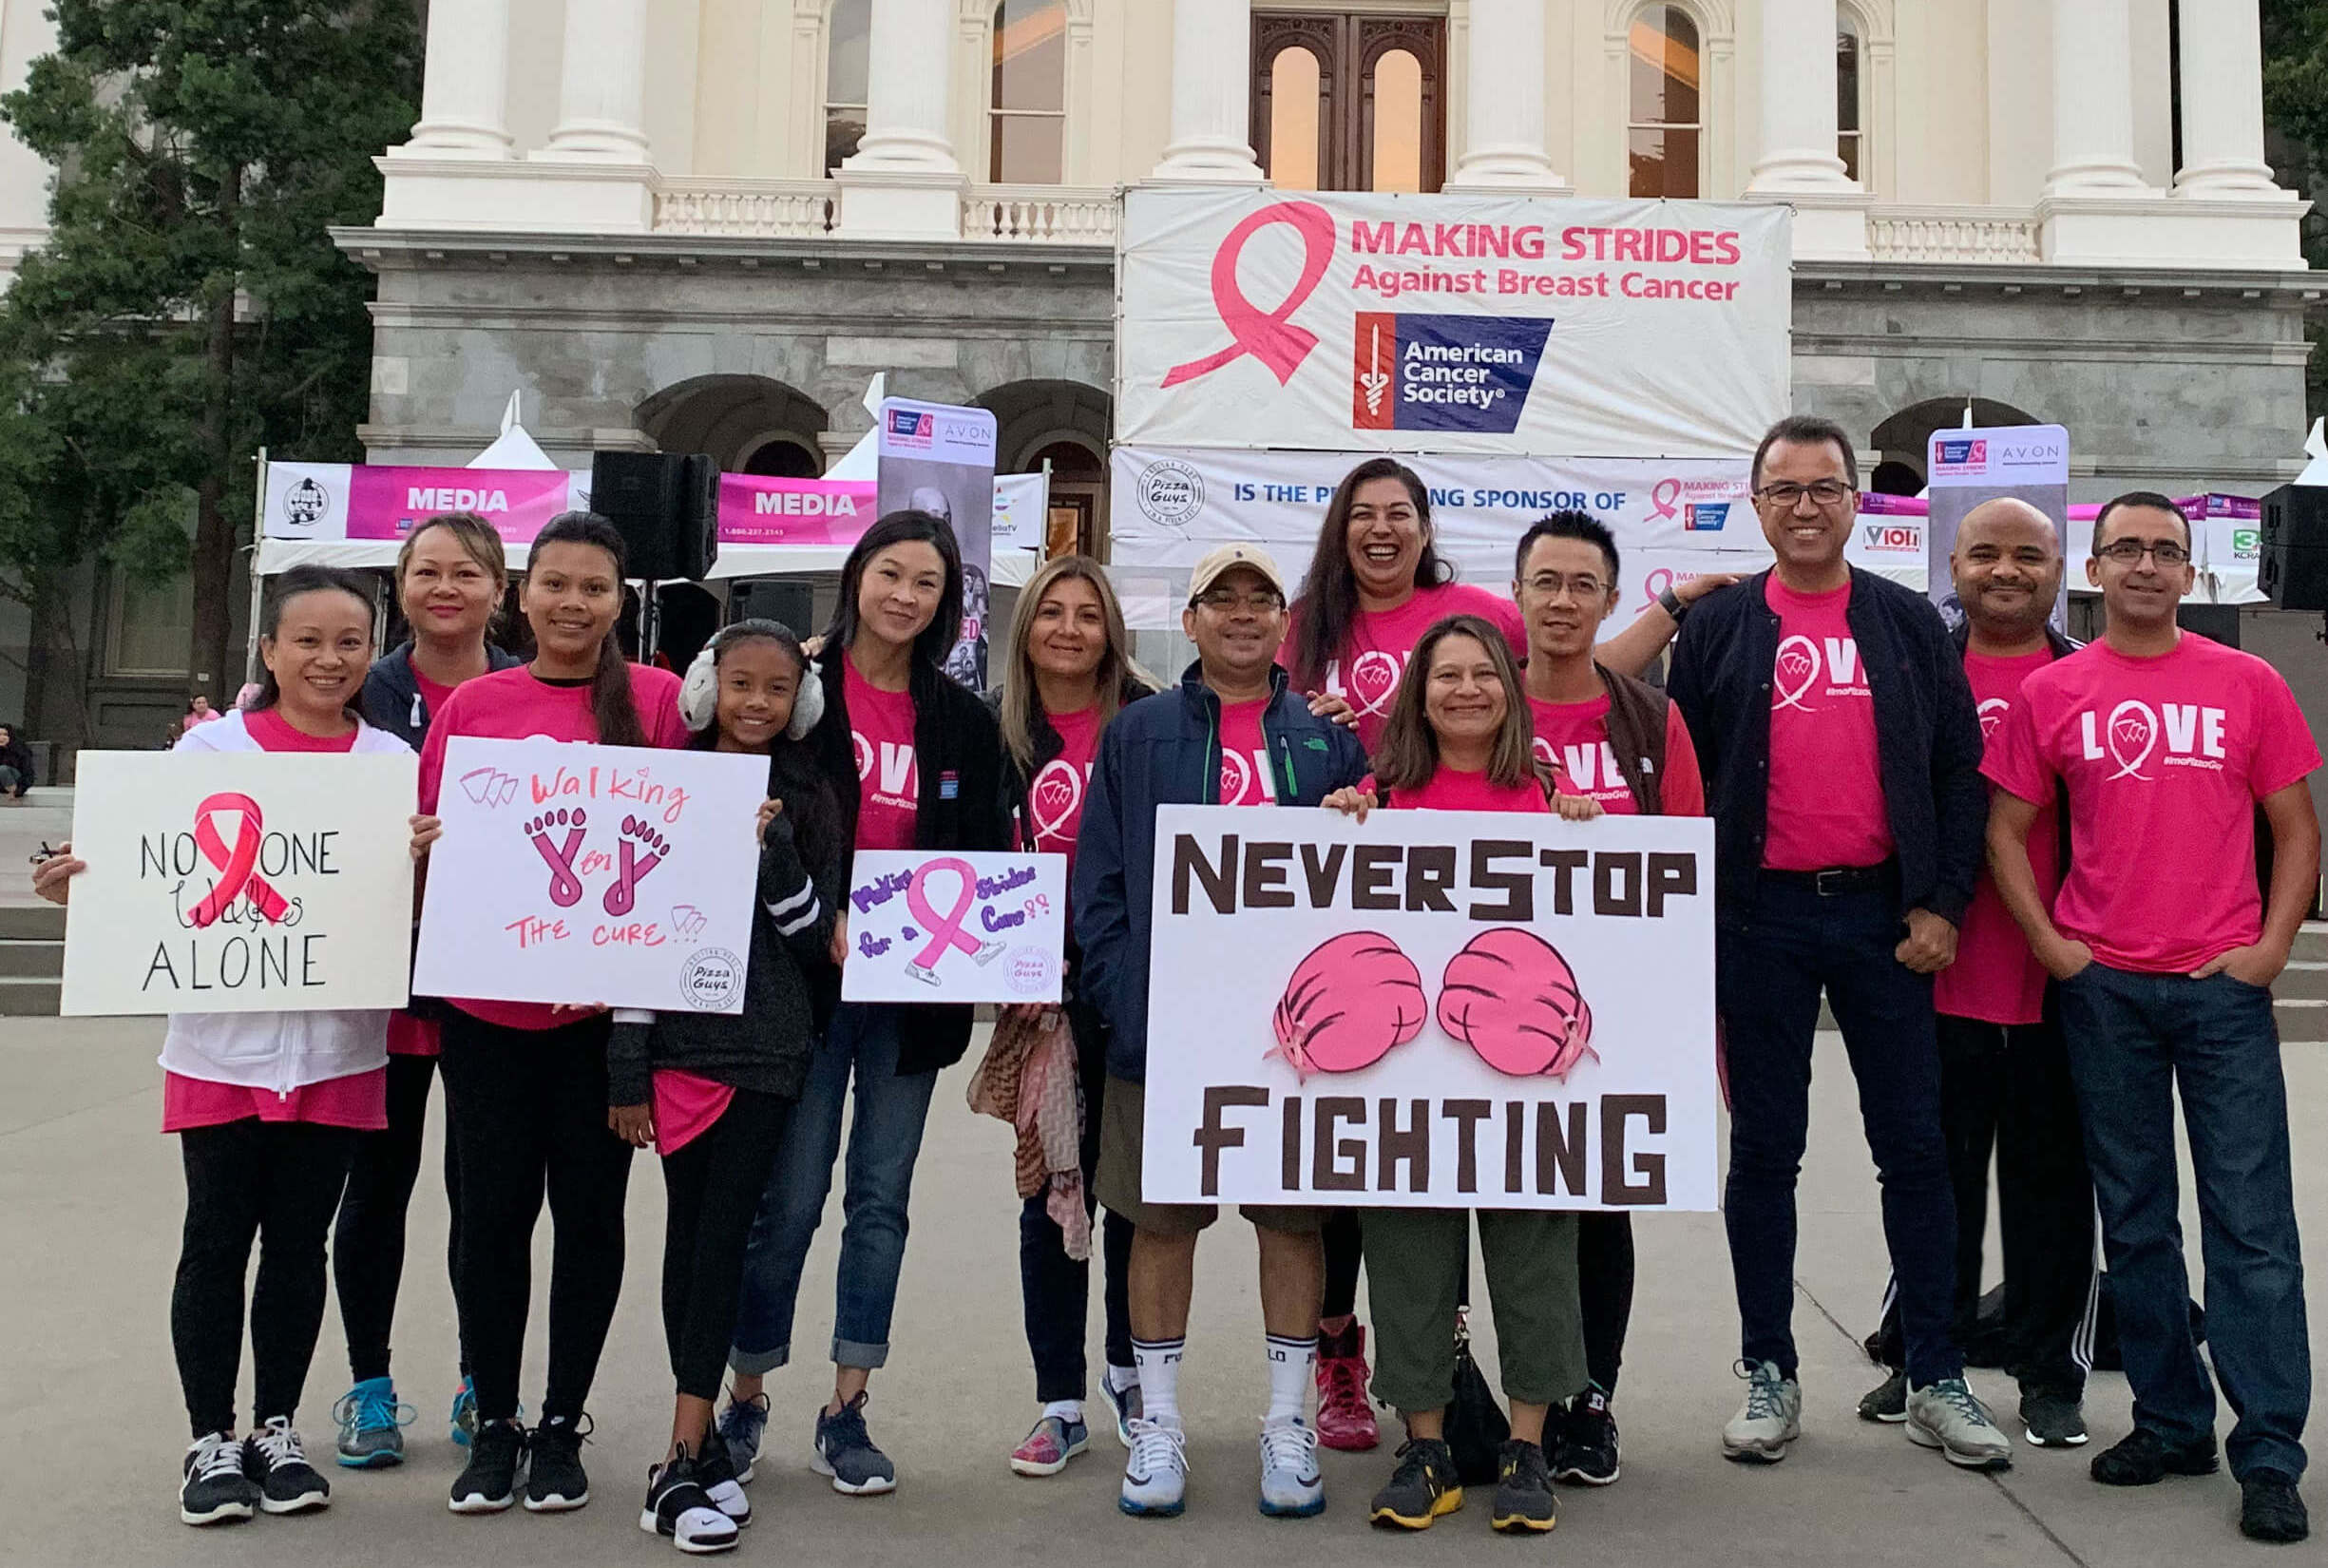 People standing in front of California Capital building for breast cancer awareness event.